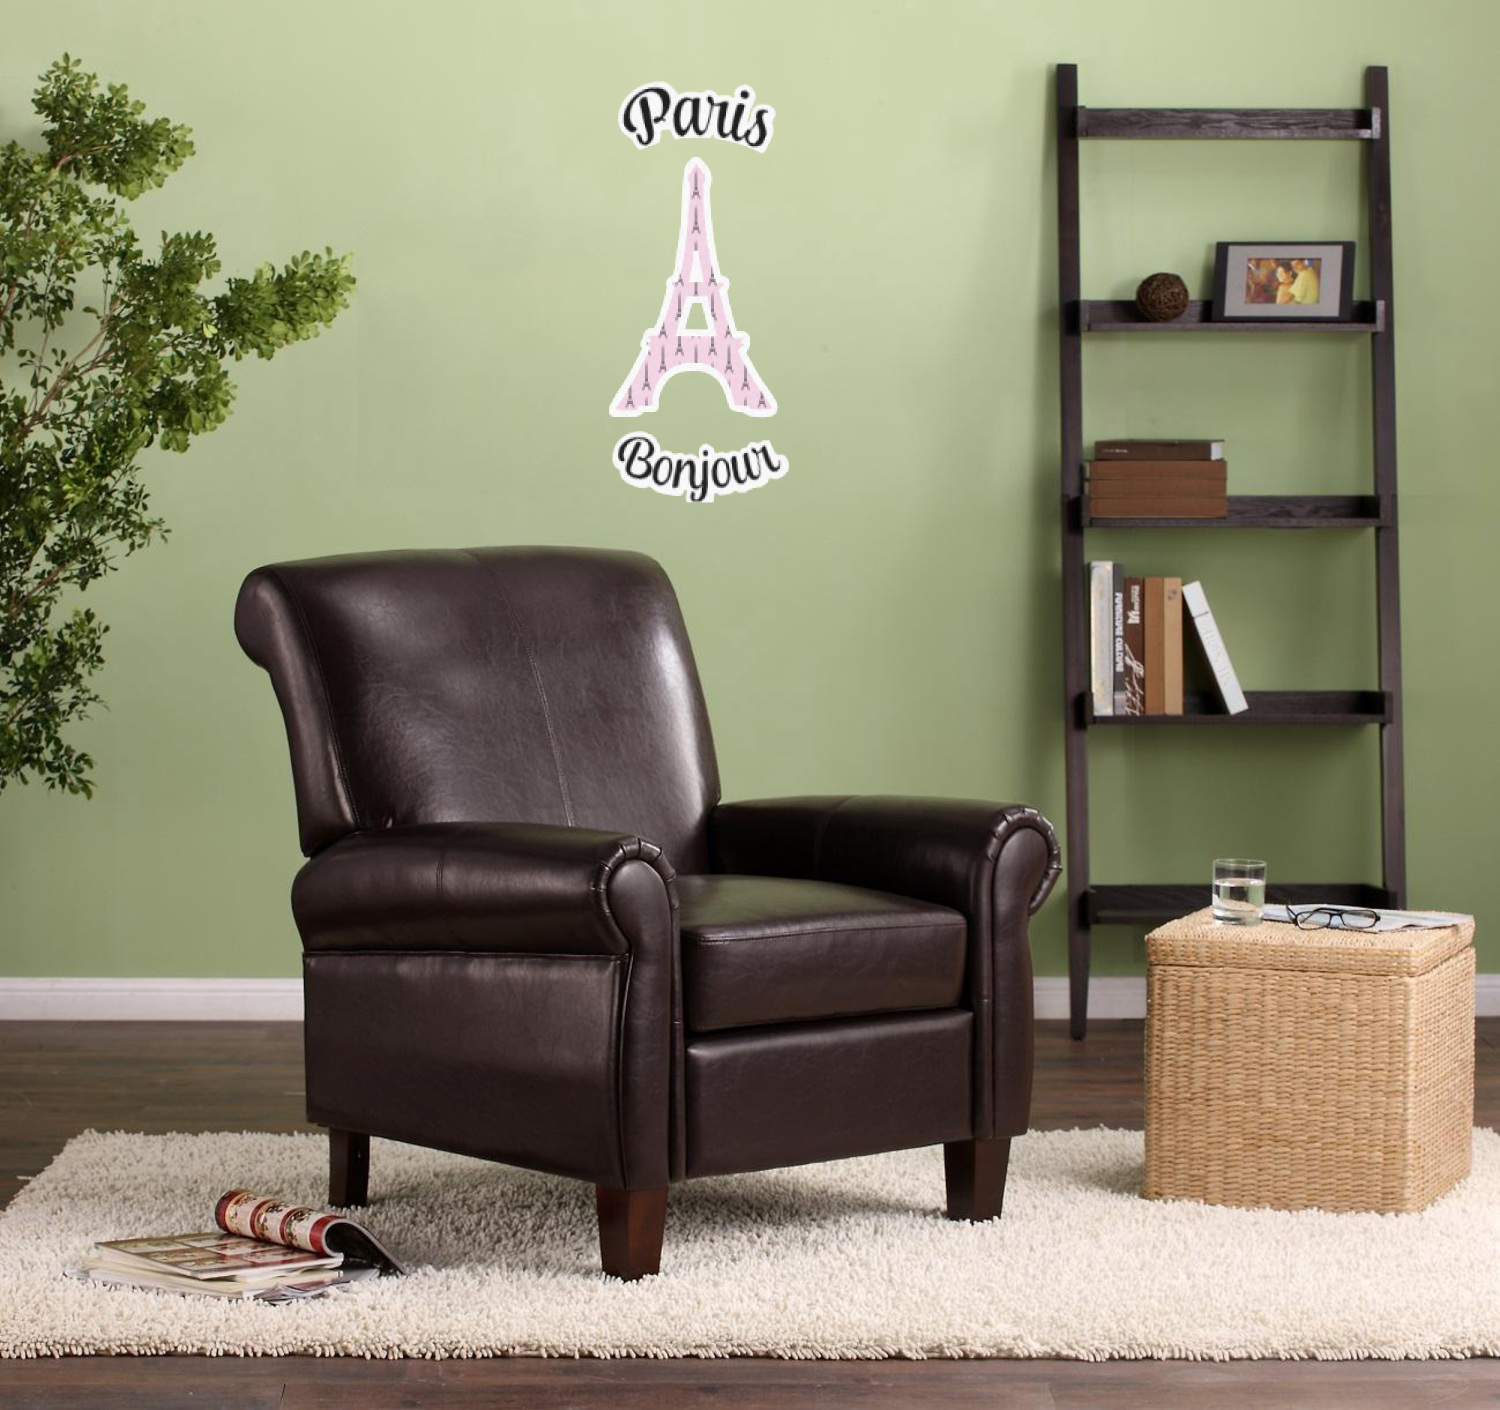 Eiffel chair living room -  Paris Bonjour And Eiffel Tower Wall Graphic On Living Room Wall